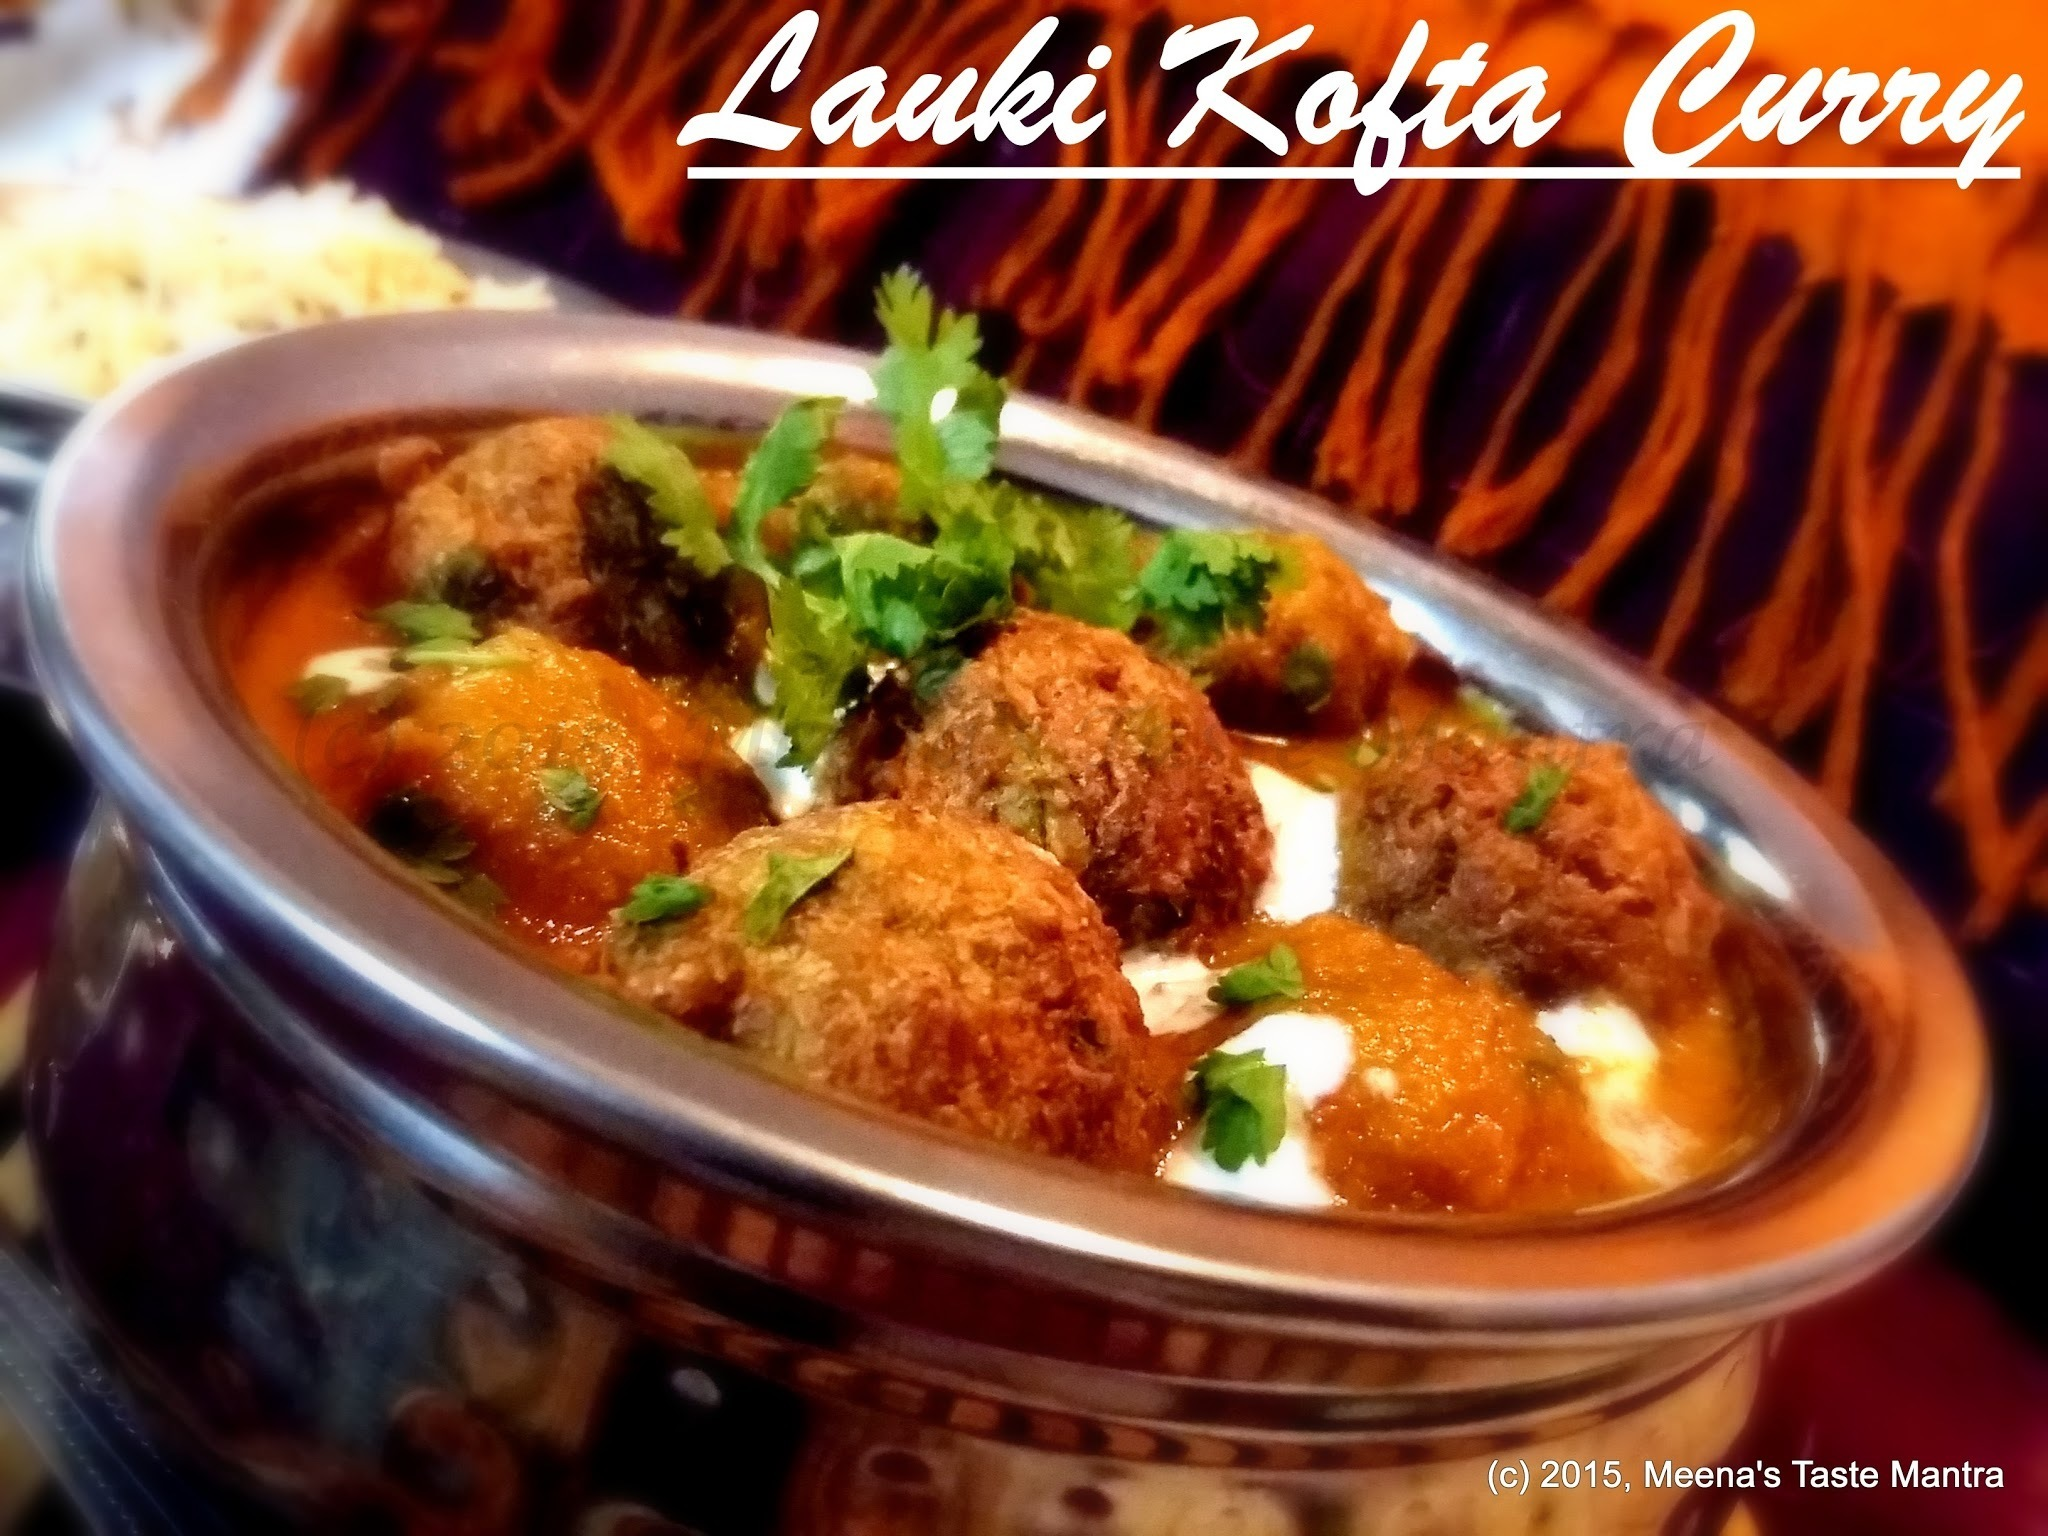 Lauki Kofta Curry - a delicious Curry with soft koftas made with Bottlegourd!